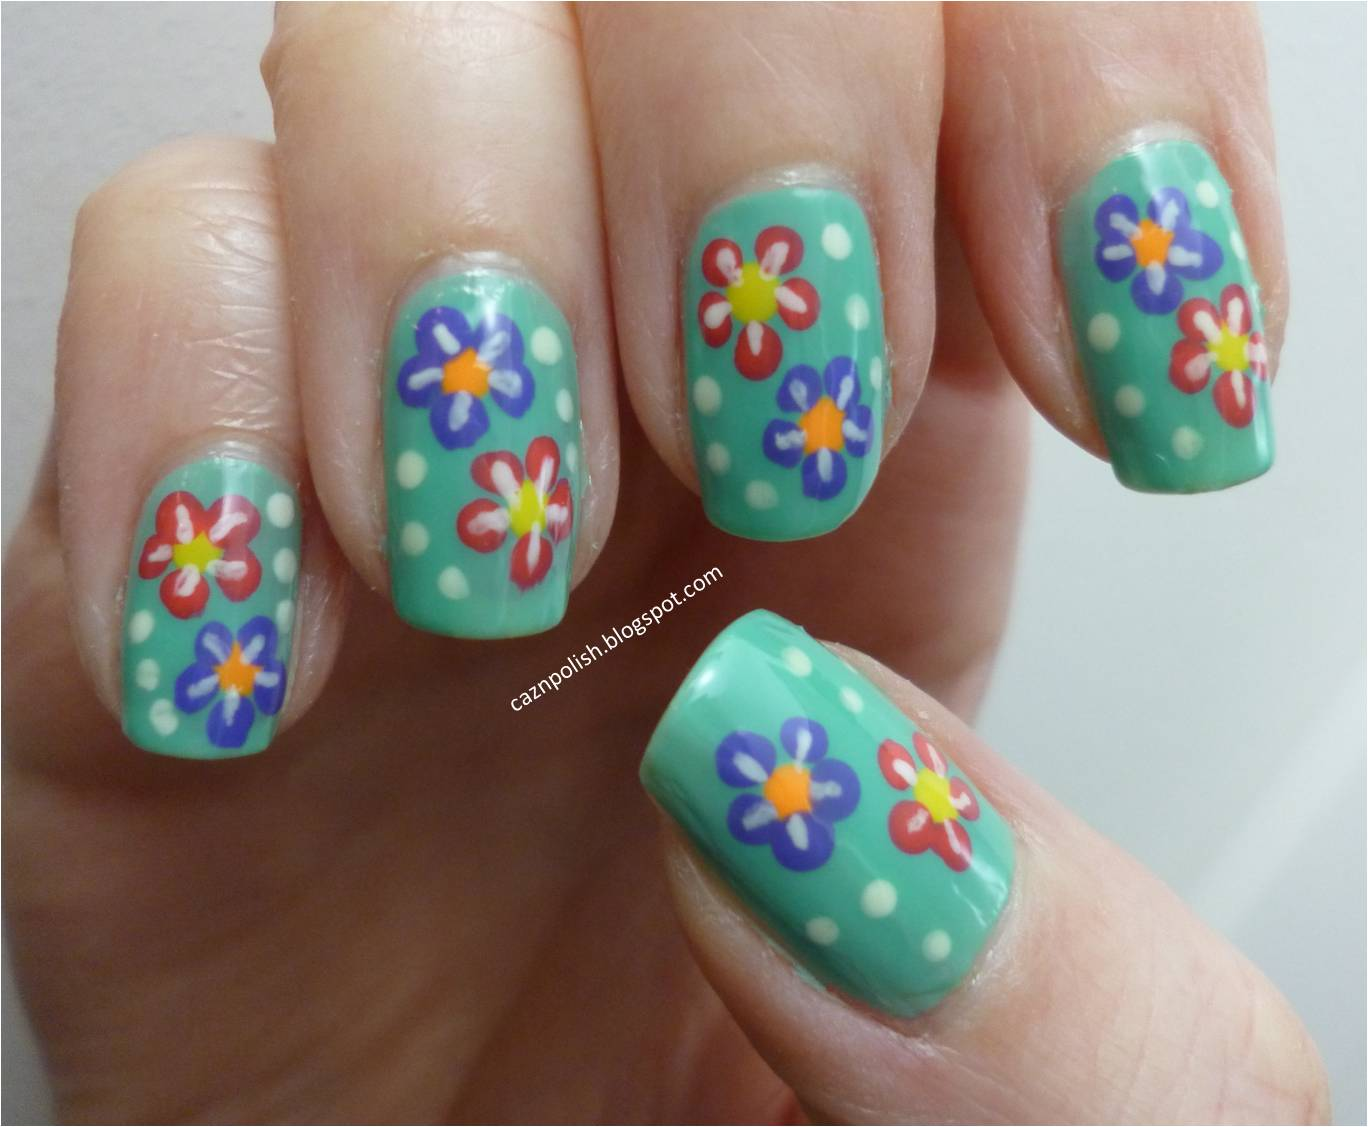 caz 'n' polish | Hawaiian Flowers Nail Art